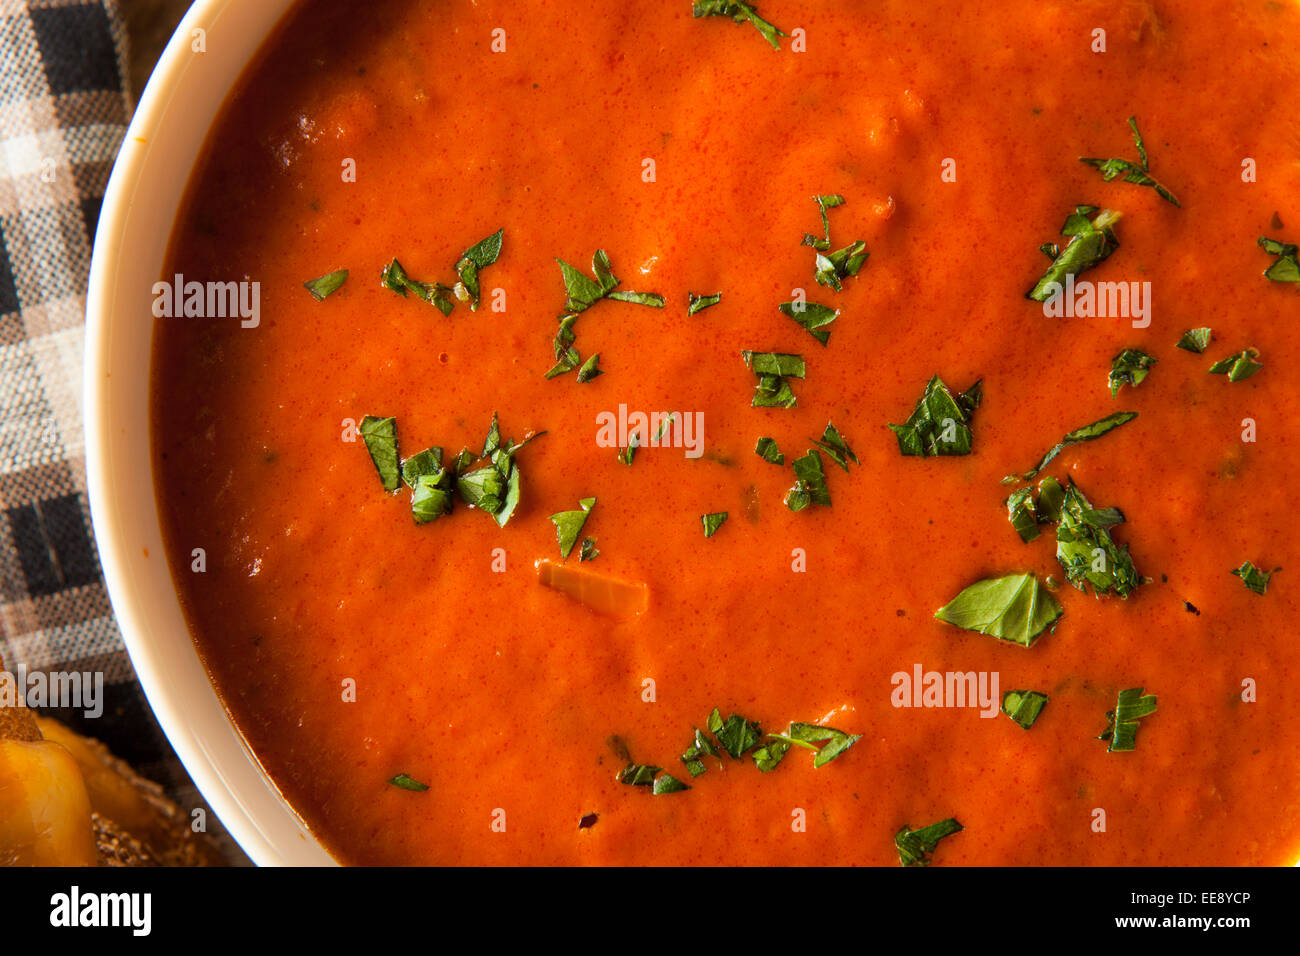 Homemade Tomato Soup with Grilled Cheese for Lunch Stock Photo